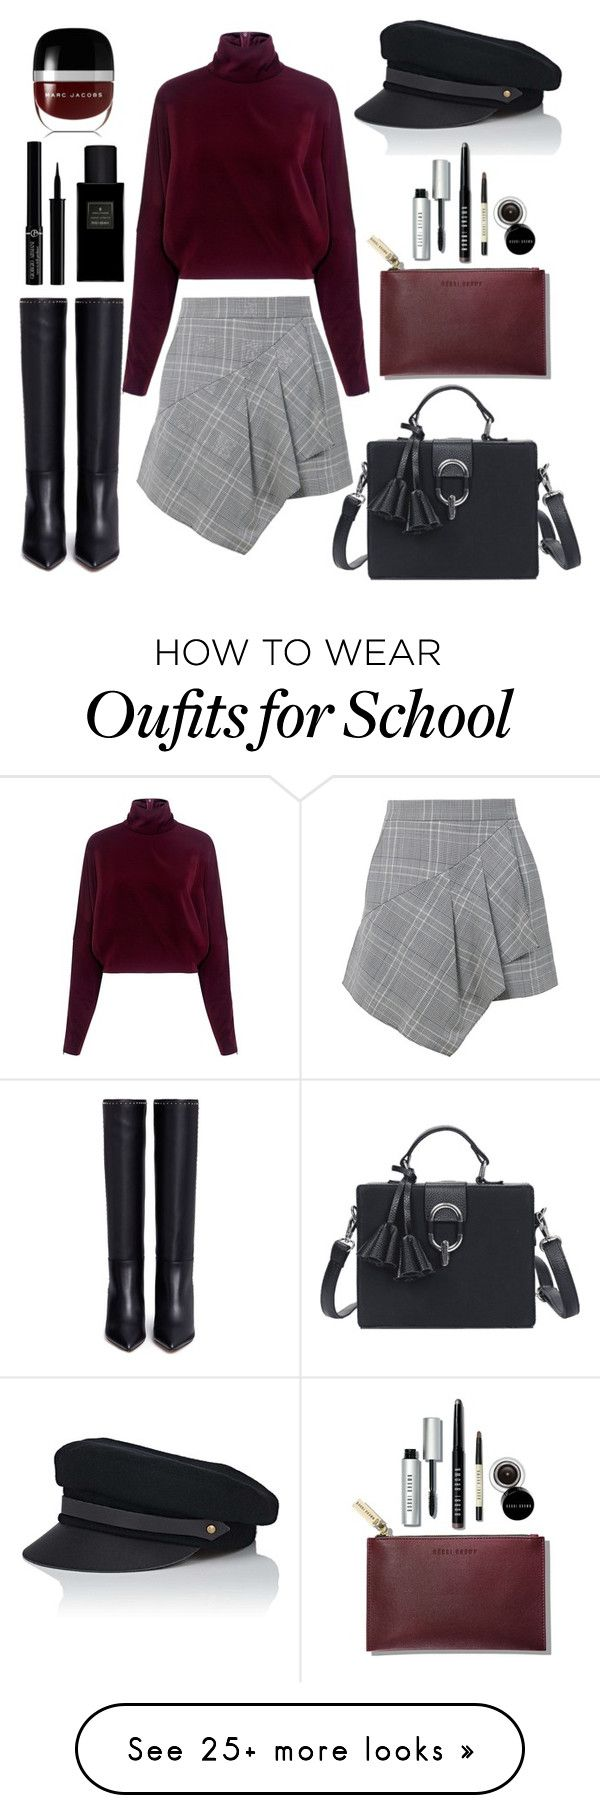 """""""After school"""" by pale on Polyvore featuring Valentino, TIBI, McQ by Alexander McQueen, Lola, Giorgio Armani, Yves Saint Laurent, Marc Jacobs and Bobbi Brown Cosmetics"""